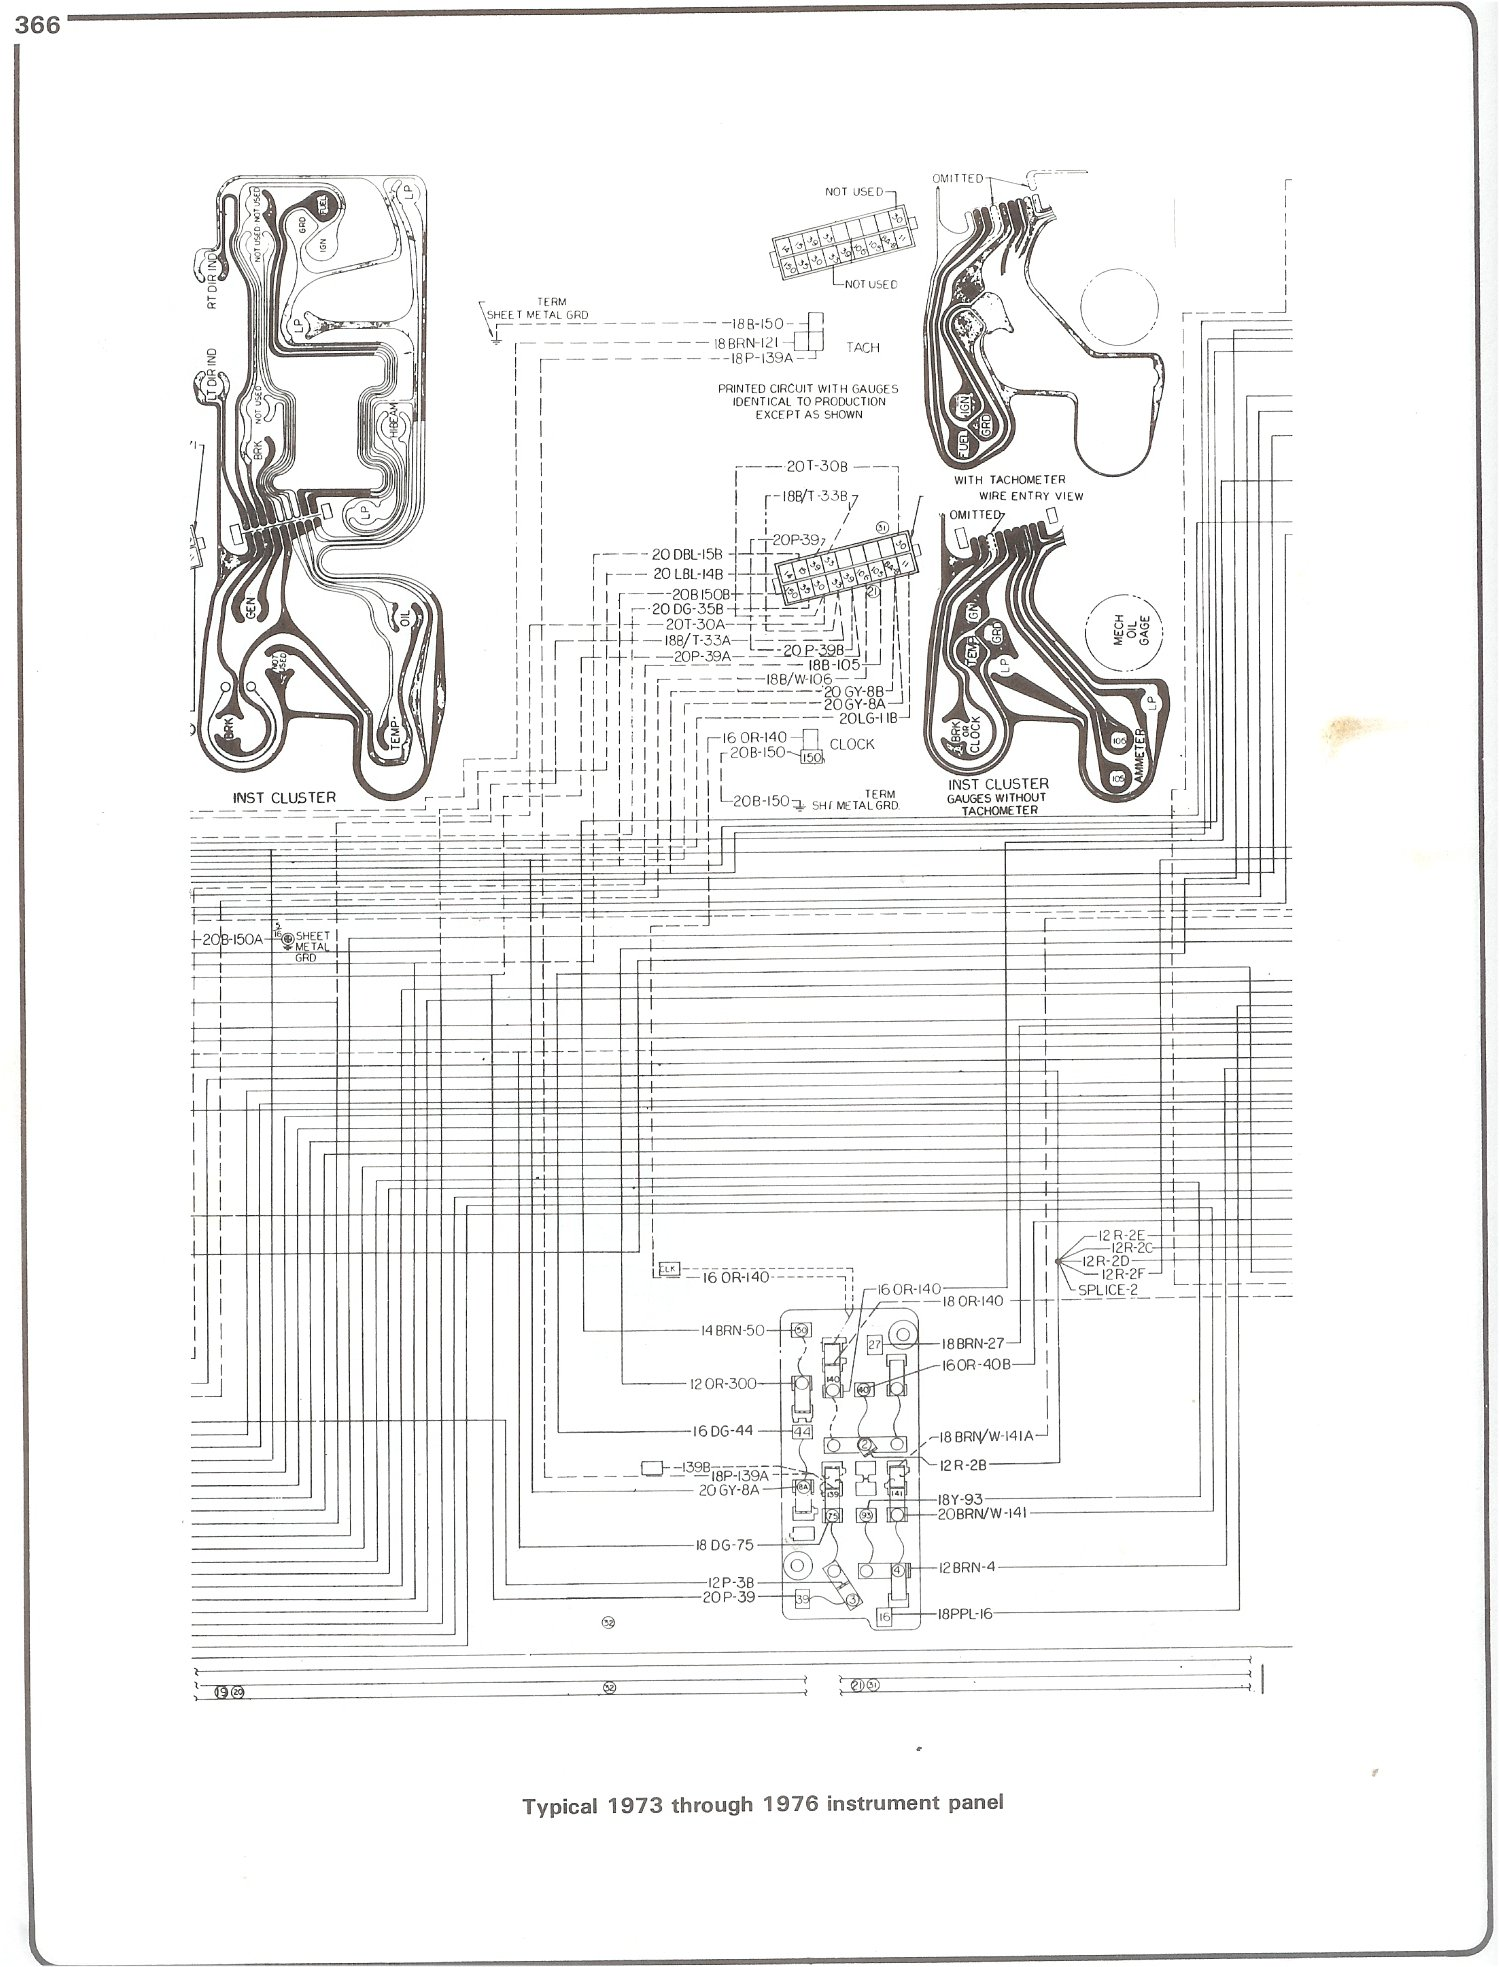 73 76_instrument complete 73 87 wiring diagrams 1978 chevy truck fuse box diagram at gsmportal.co